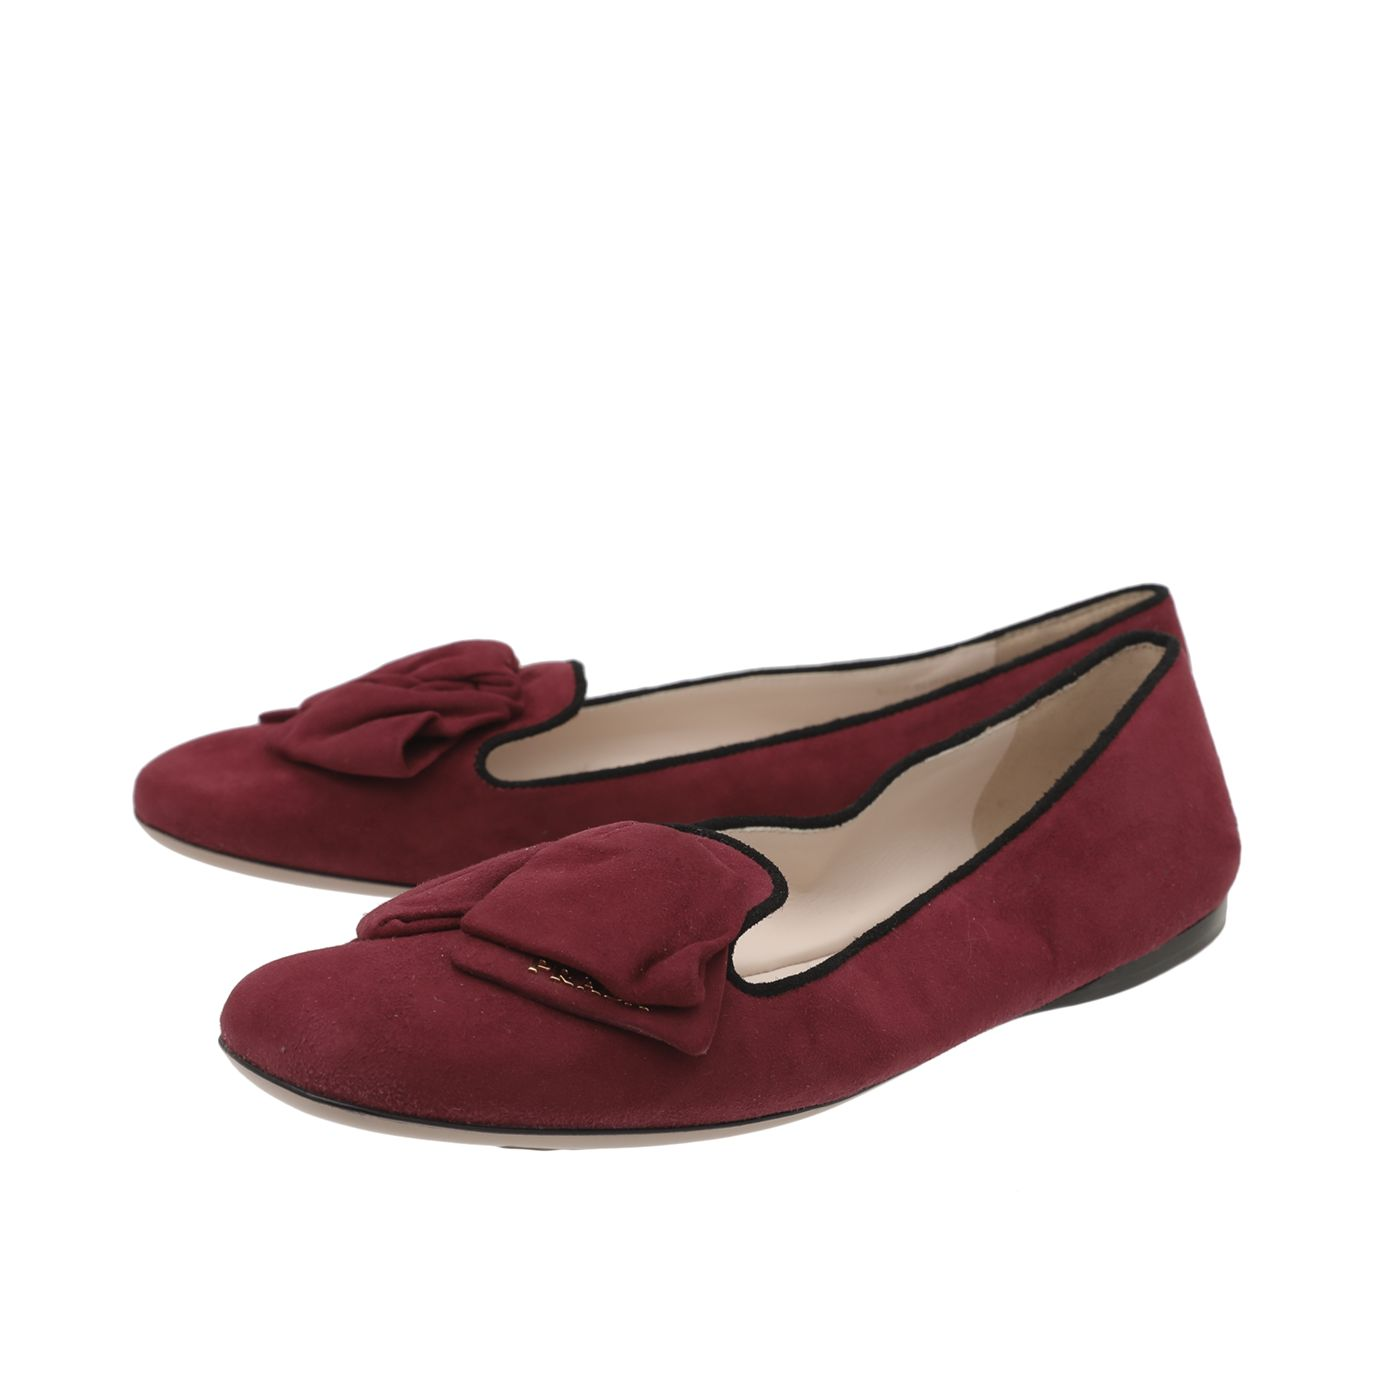 Prada Bicolor Suede Bow Accents Loafers Ballet Flats 39.5